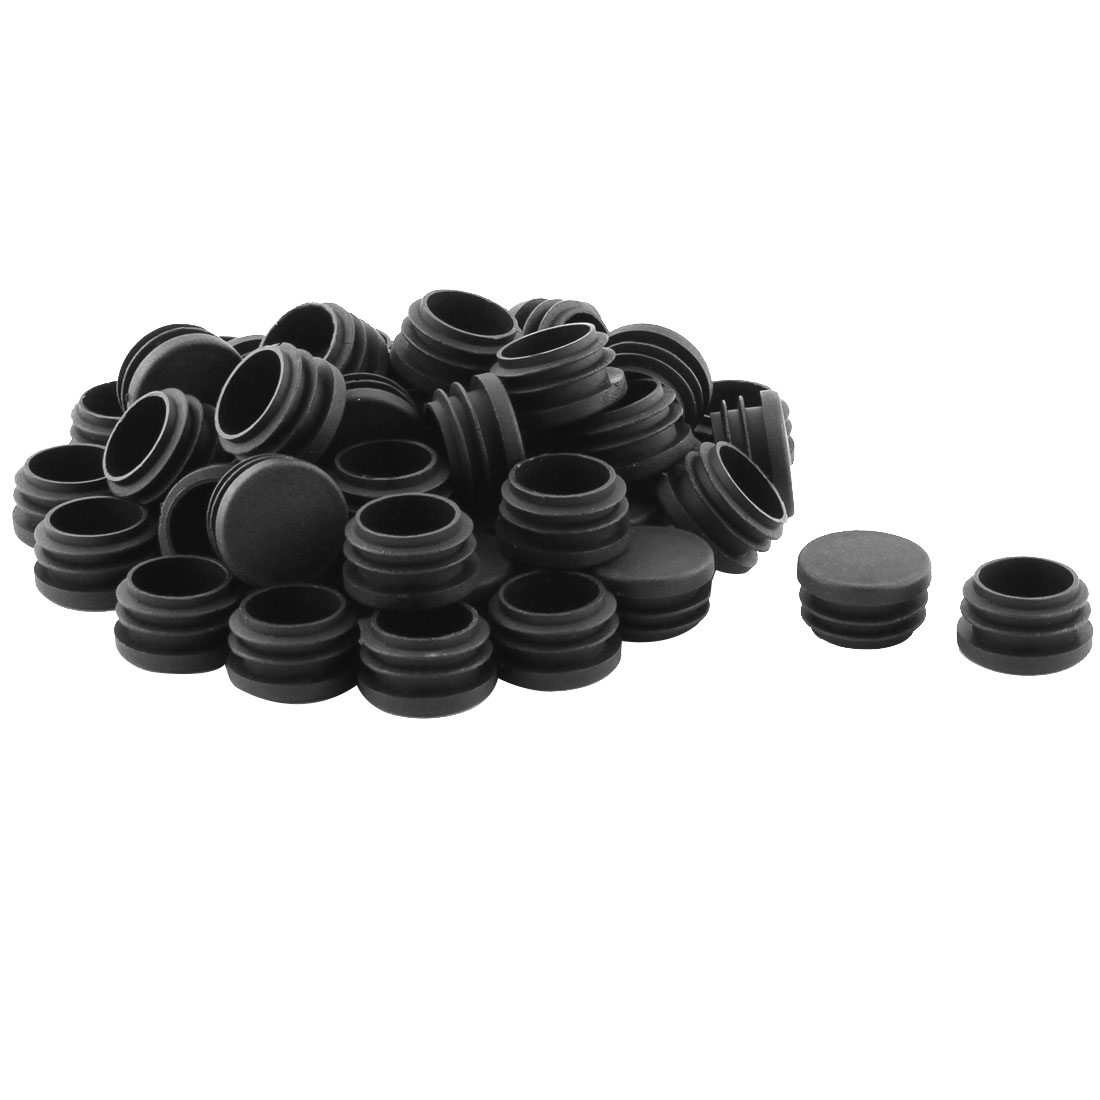 Table Chair Feet Plastic Round Shape Pipe Tube Insert Cap Black 50 Pcs